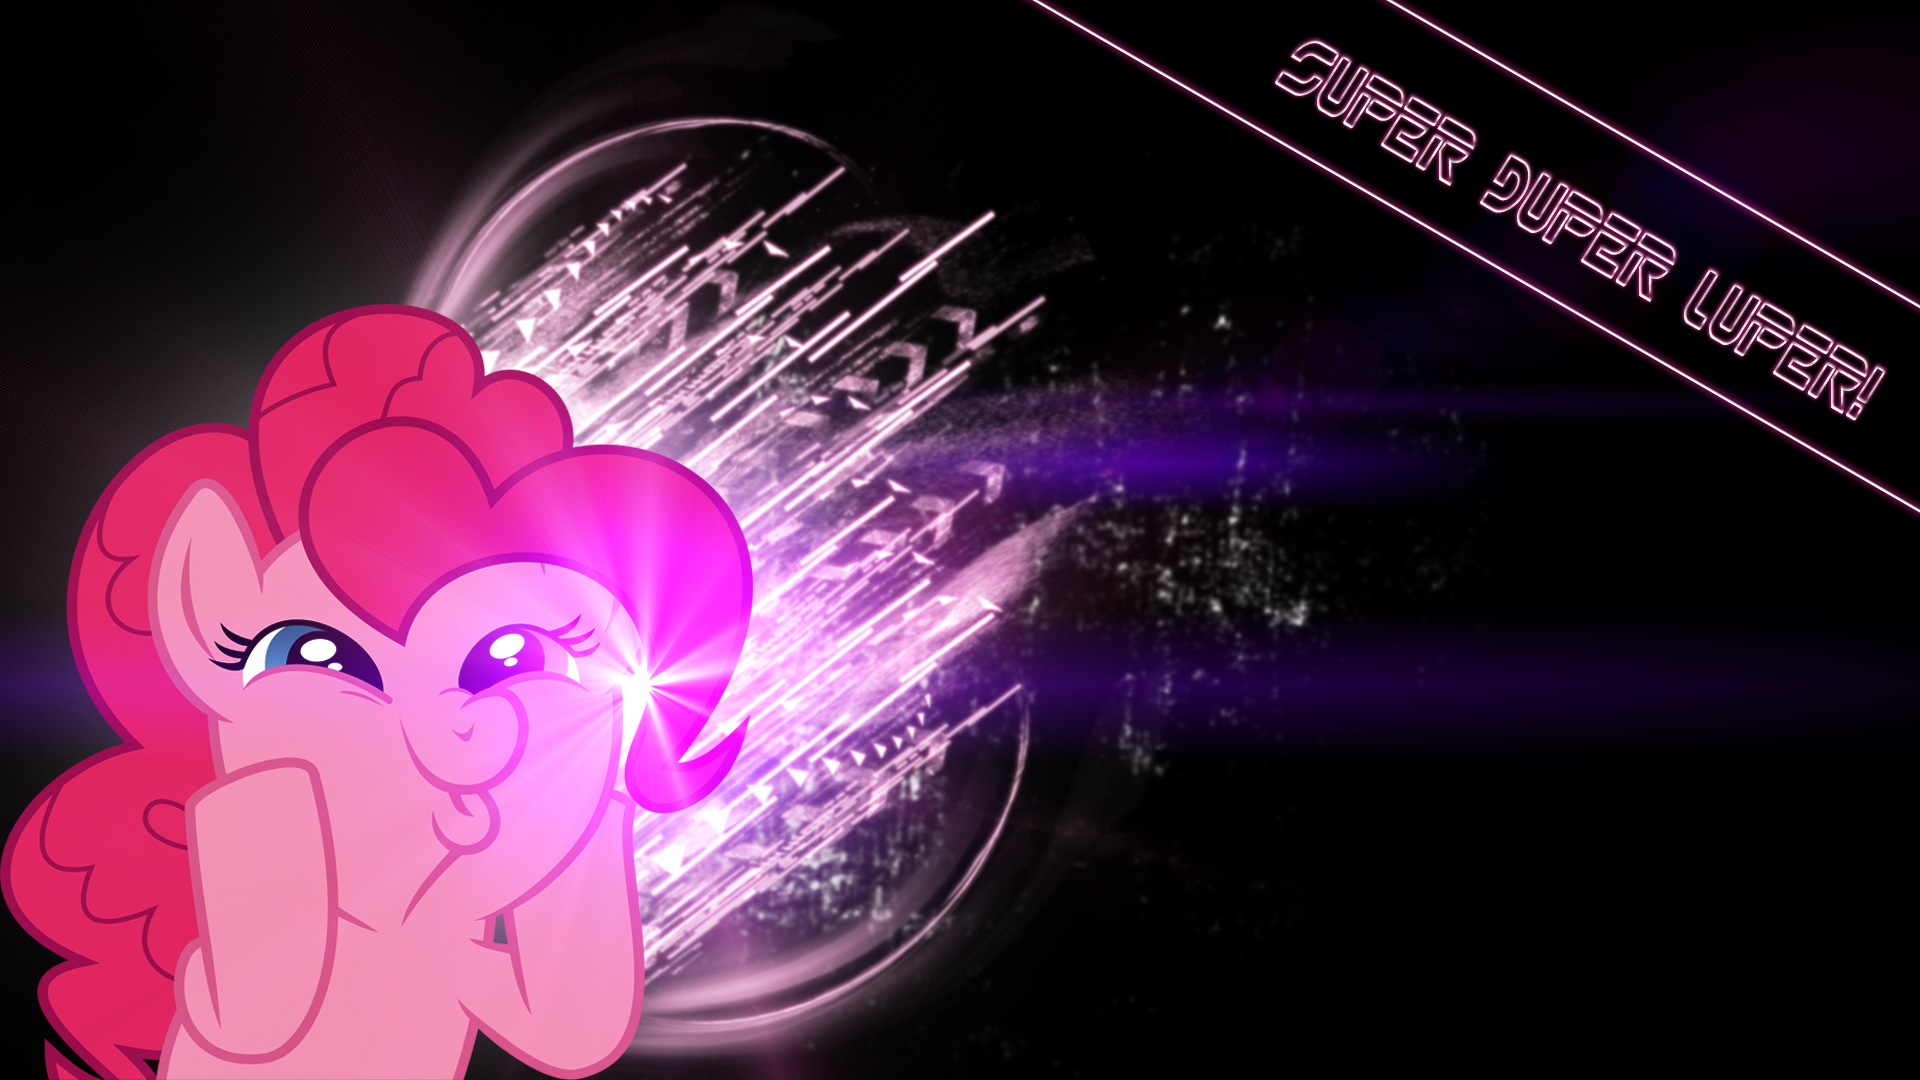 Pinkie Pie Super Duper Luper! by BronyYAY123 and Mamandil